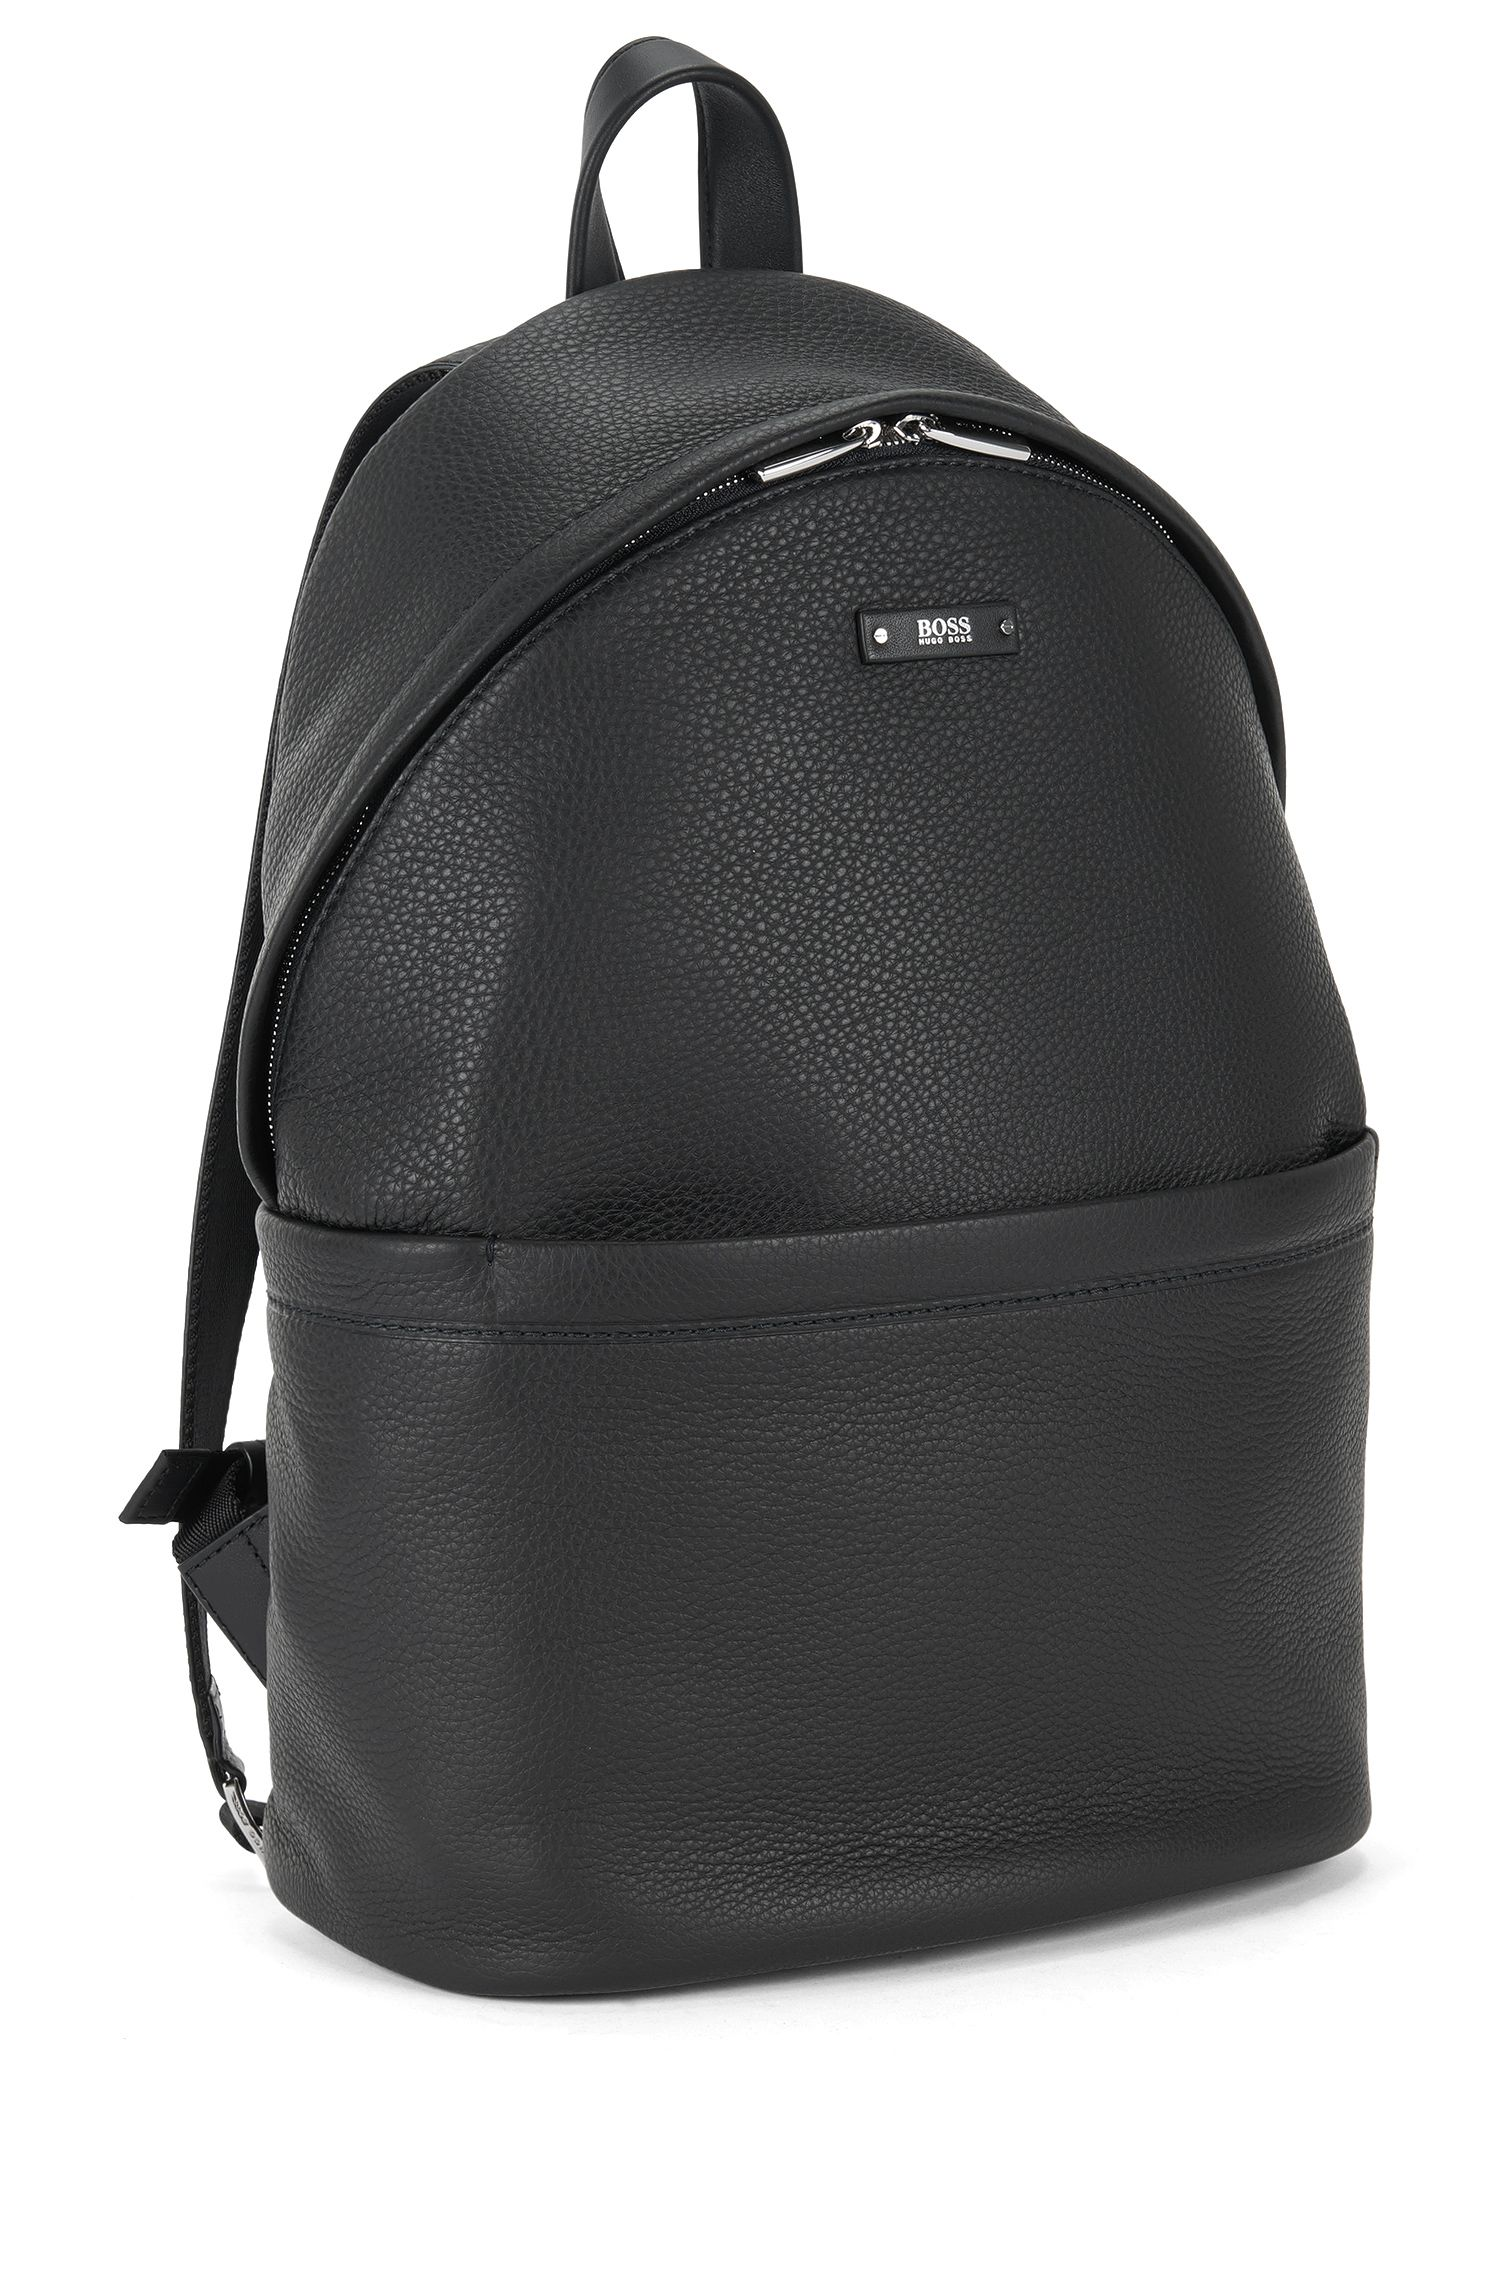 Leather Backpack | Traveller Backpack